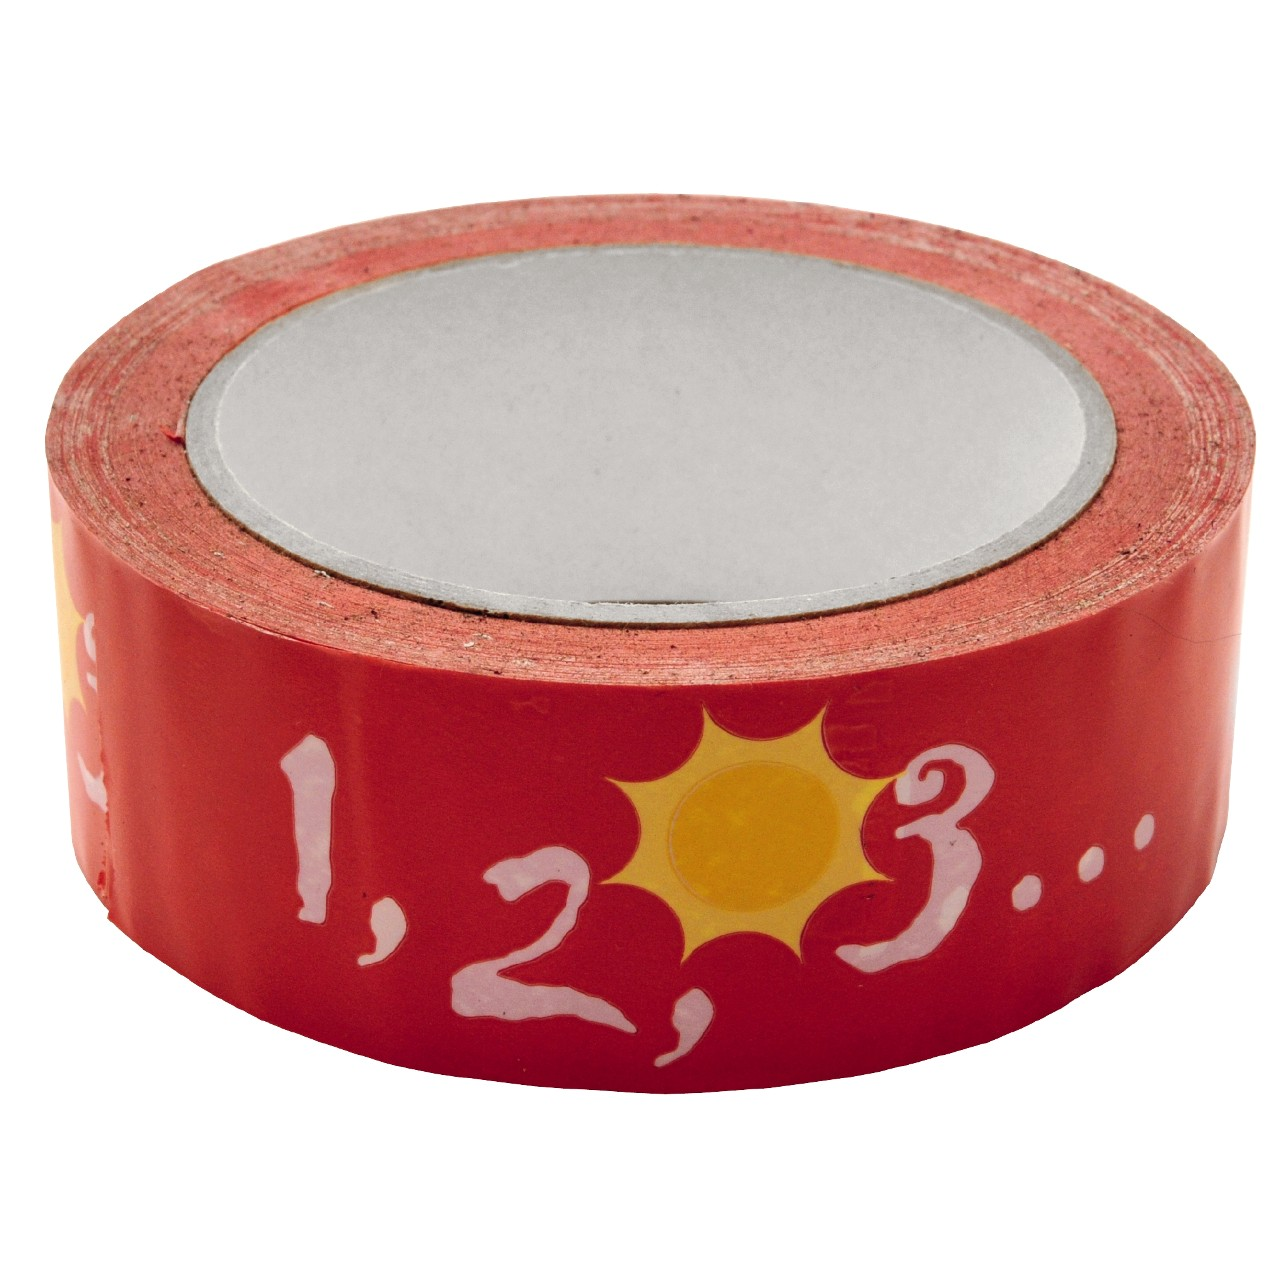 Tape 1,2,3 red